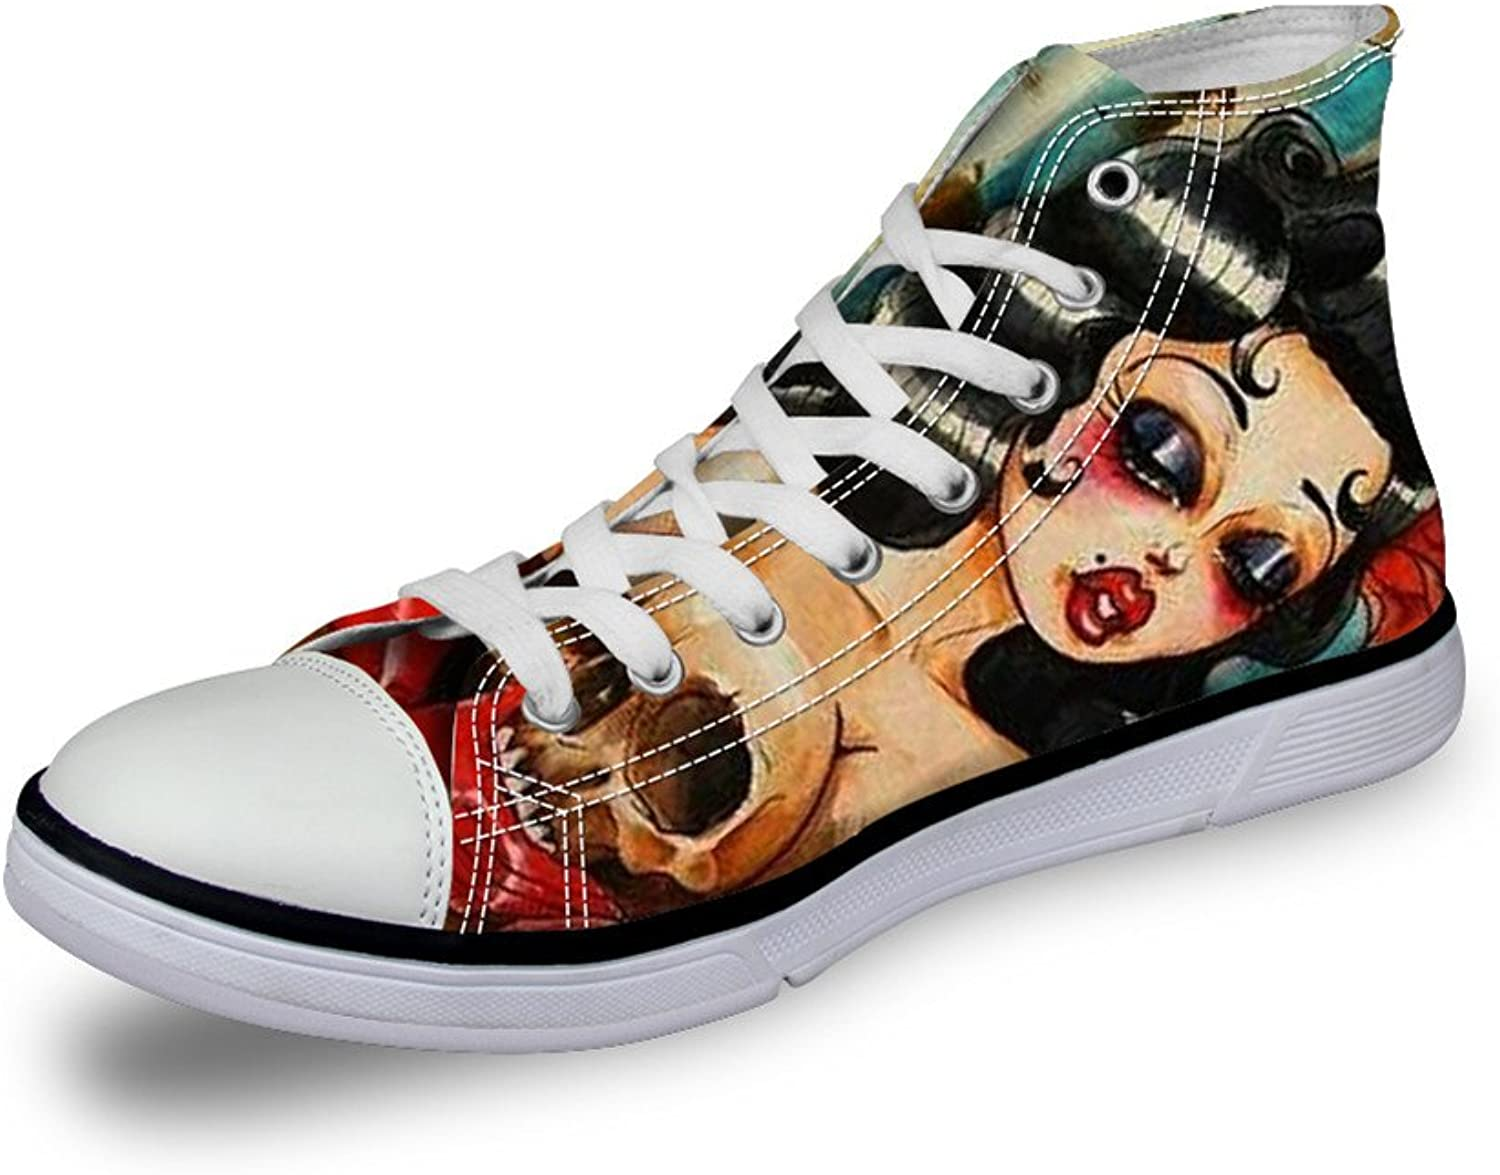 FOR U DESIGNS Stylish Skull Creative Print High Top Lace Up Light Weight Casual Canvas Sneakers for Women and Men